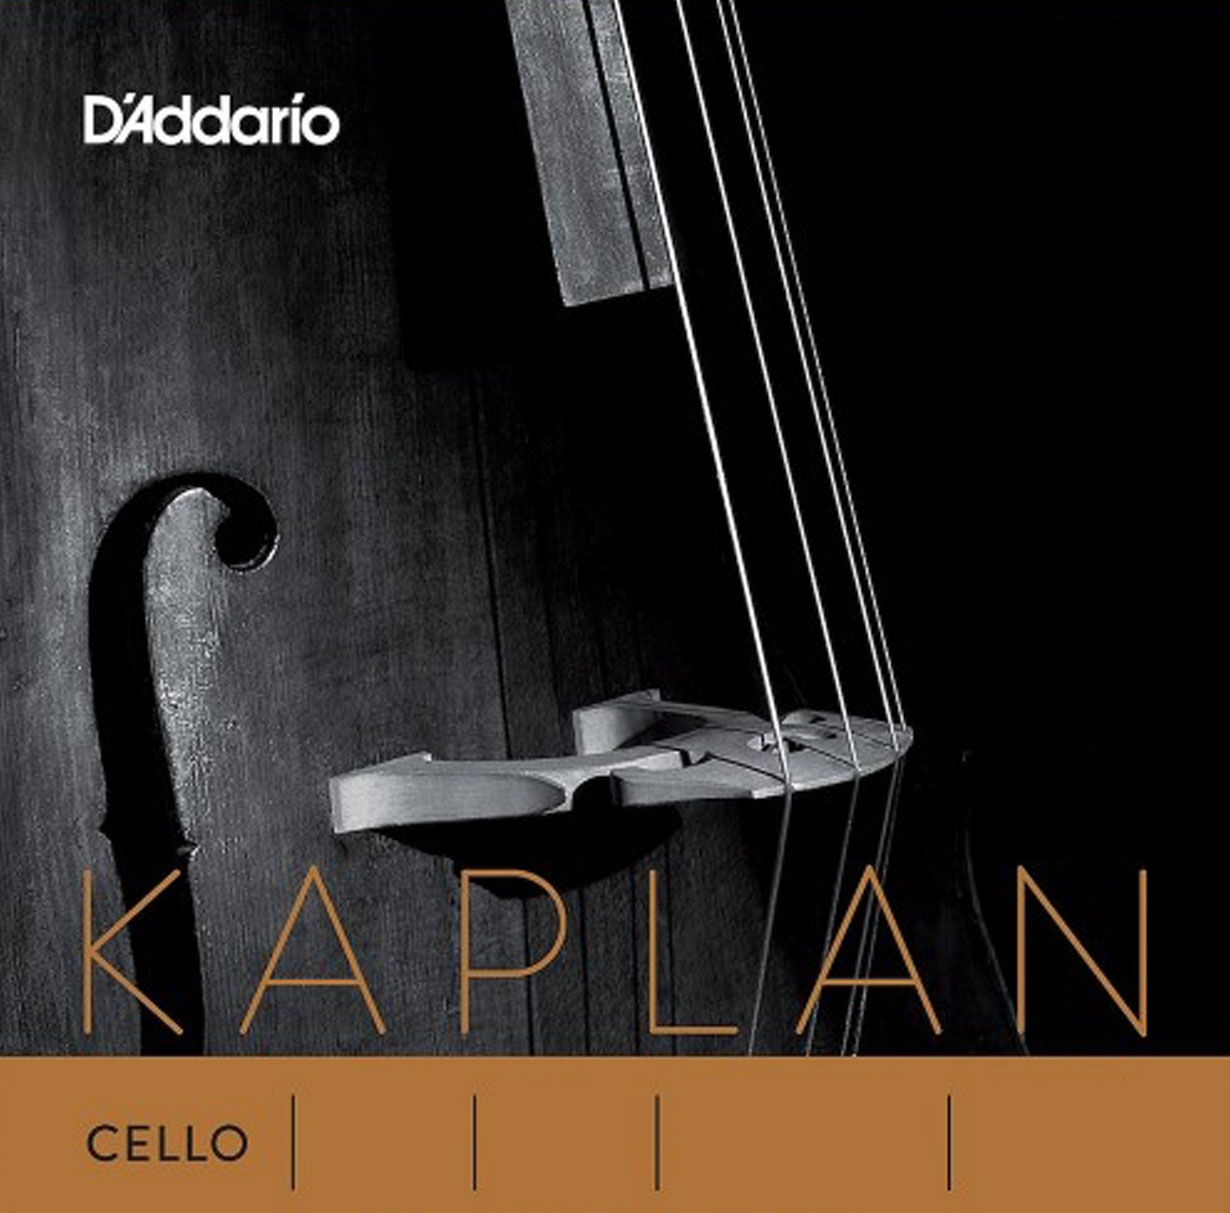 D'Addario Kaplan Cello A String